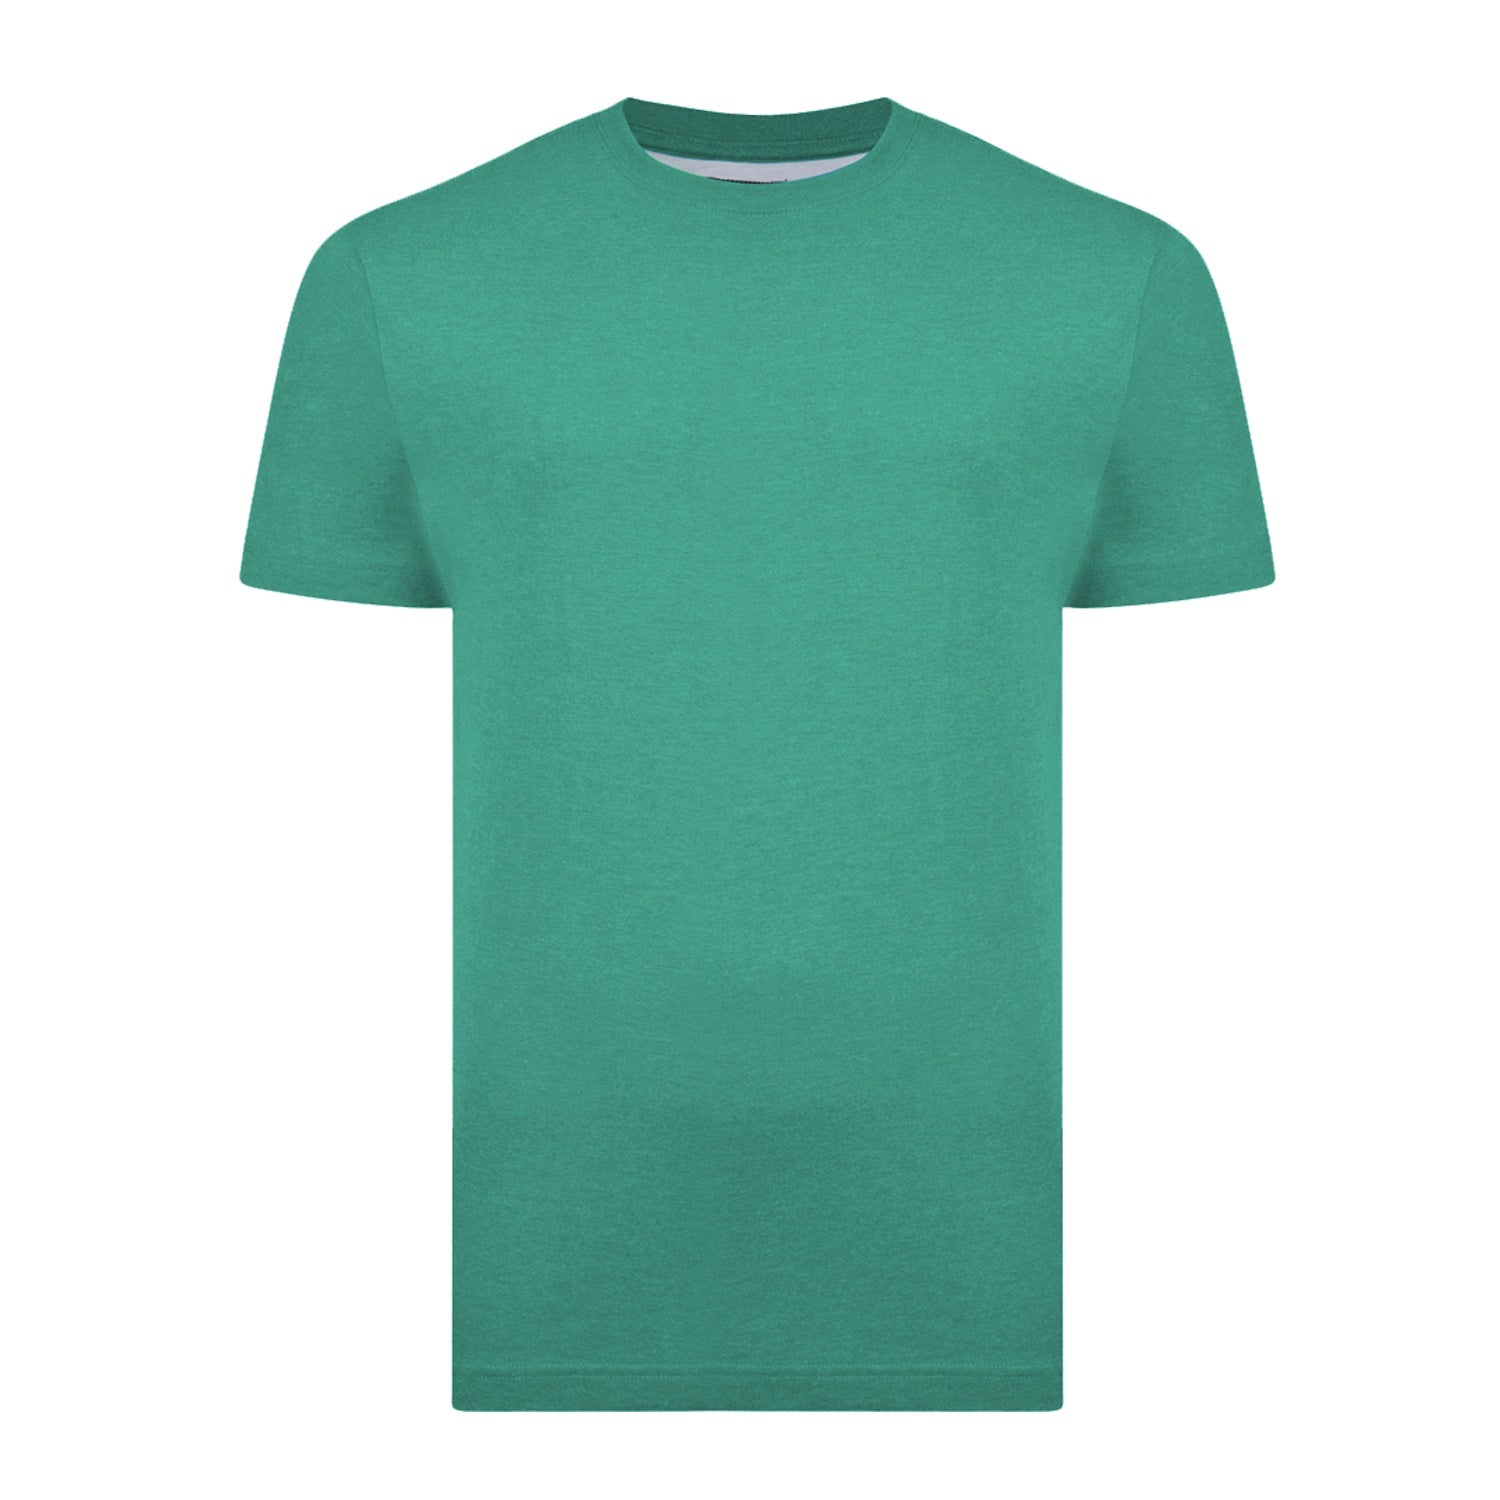 Kam Plain Round Neck T-Shirt - KBS 500S - Breeze 1